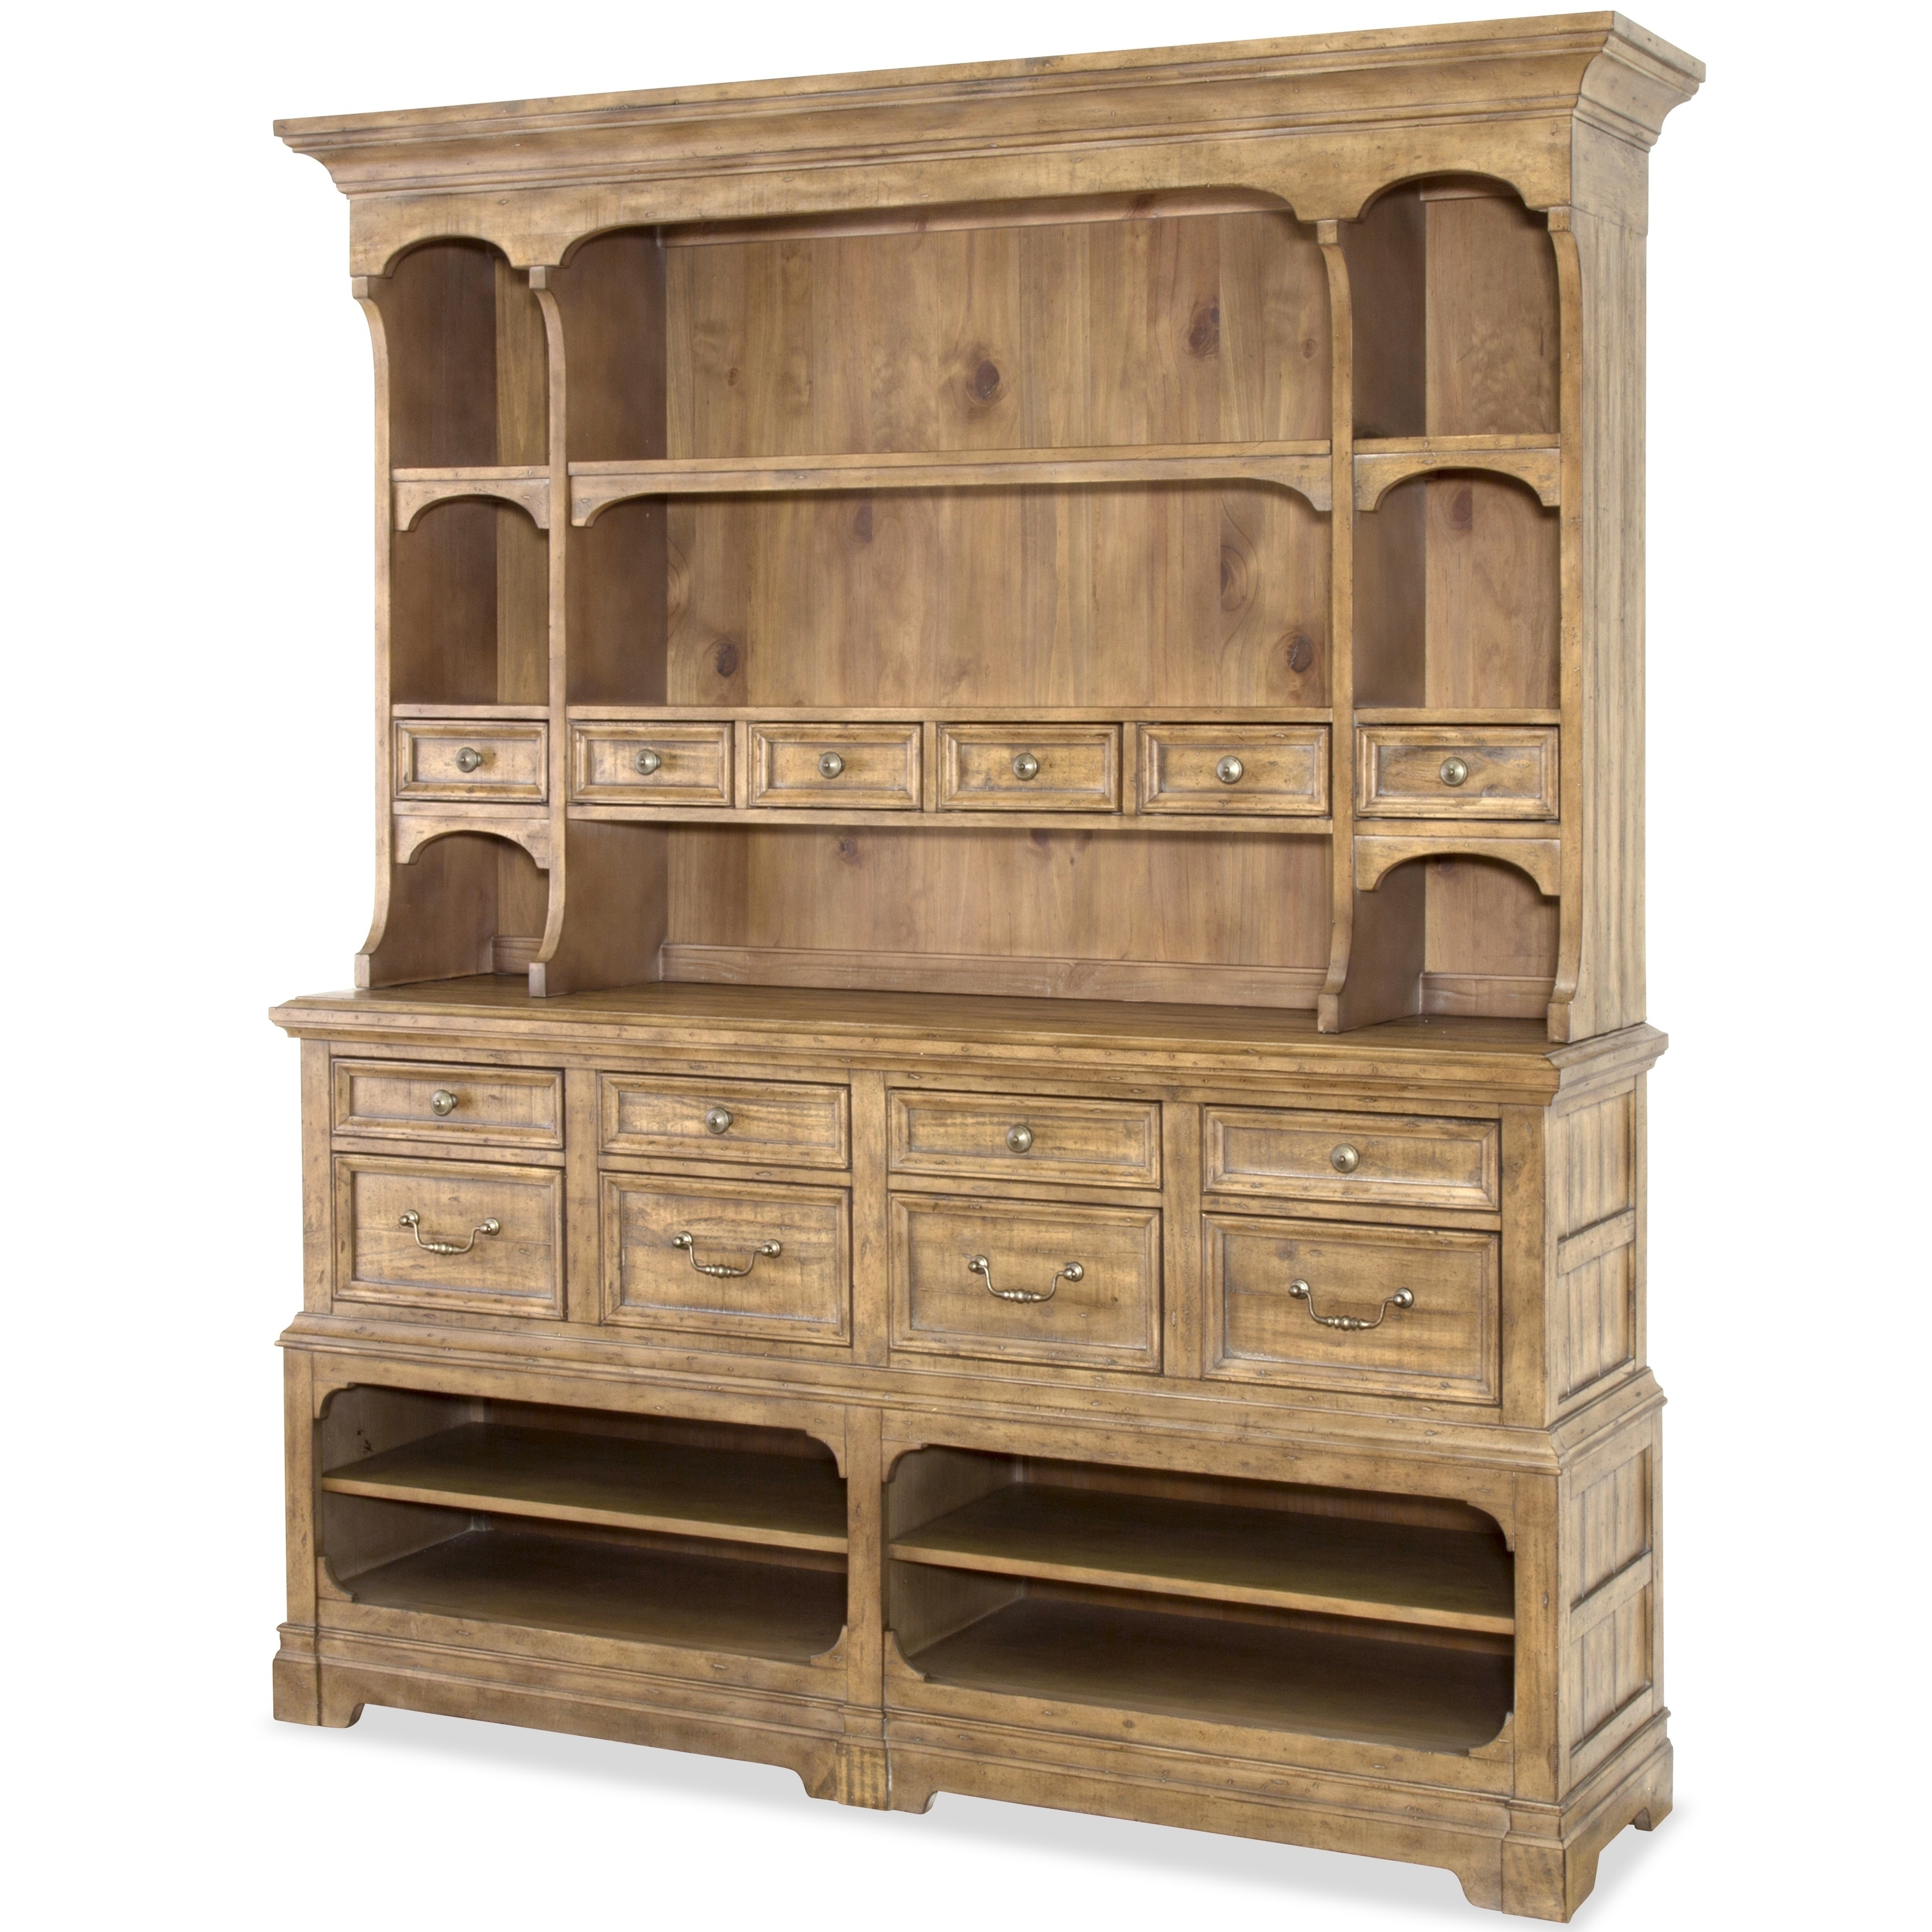 derivatives shop furniture hutch for and joyful decor img to places dish the favorites best affordable friday